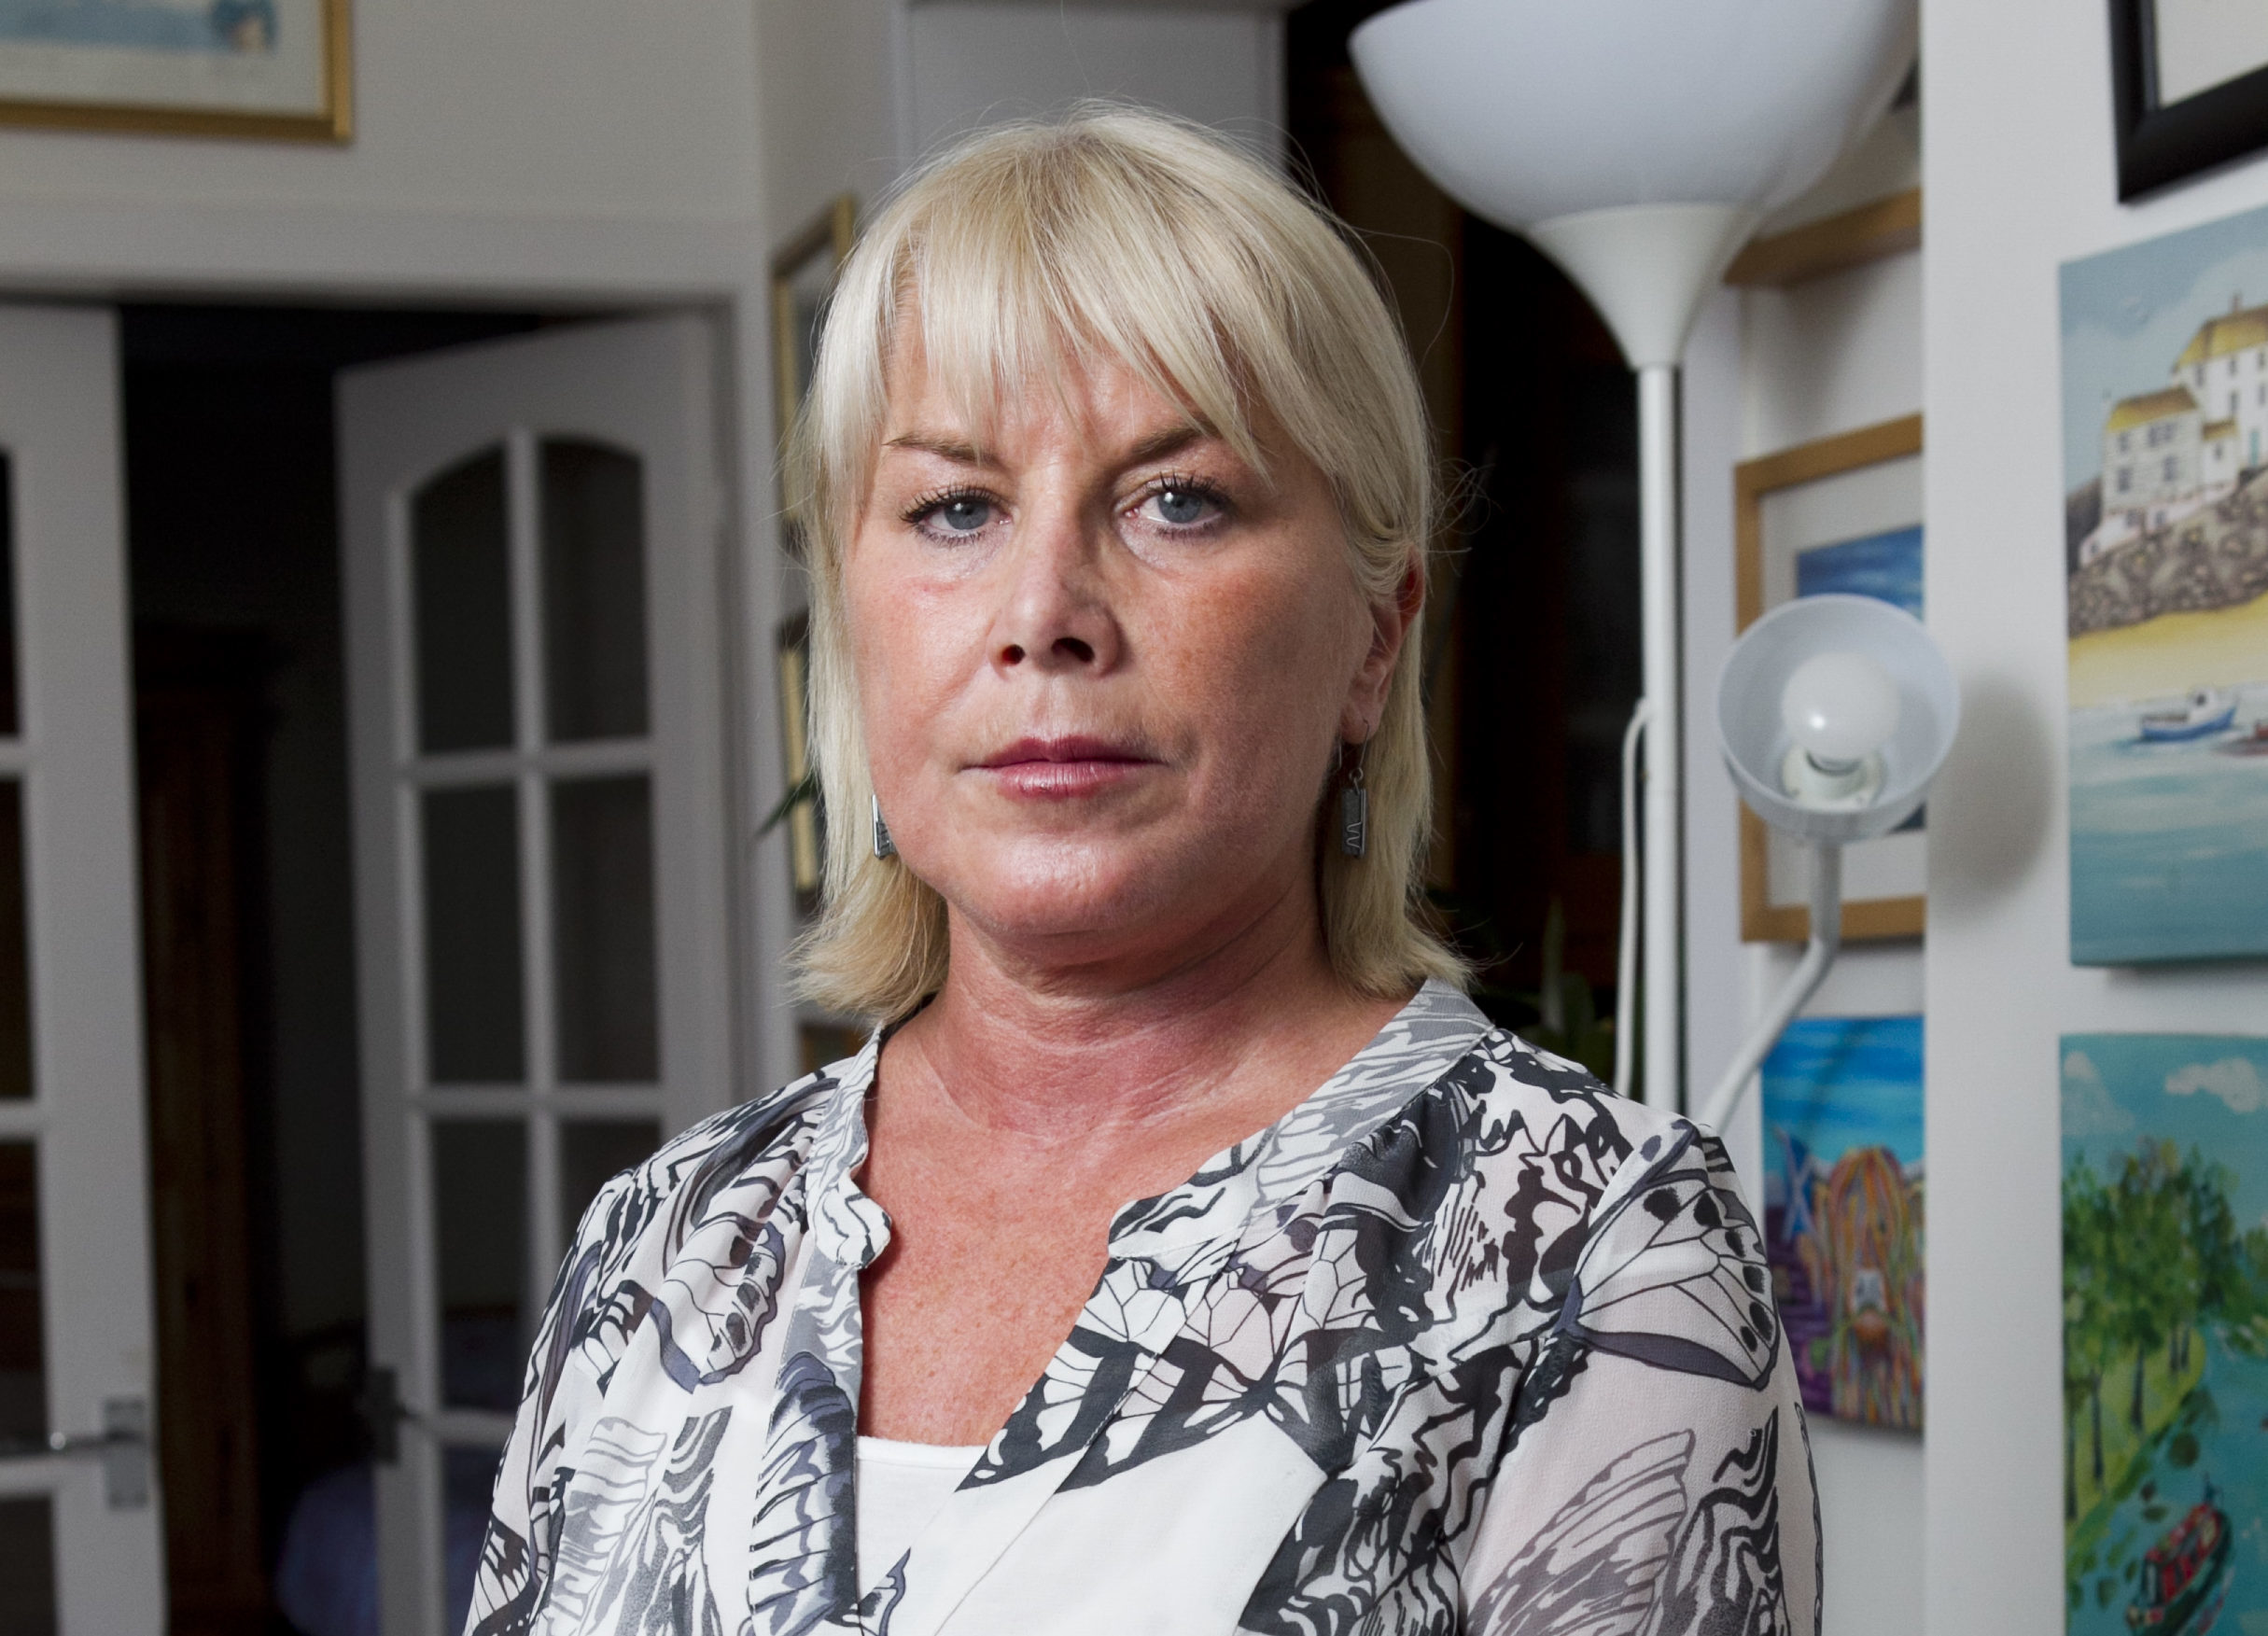 Anne Marie Kernoghan, who is unhappy after a court case collapsed because of police errors - the case was meant to prosecute carers who mistreated her severely disabled sister, Mary Anne Caldwell. (Andrew Cawley)